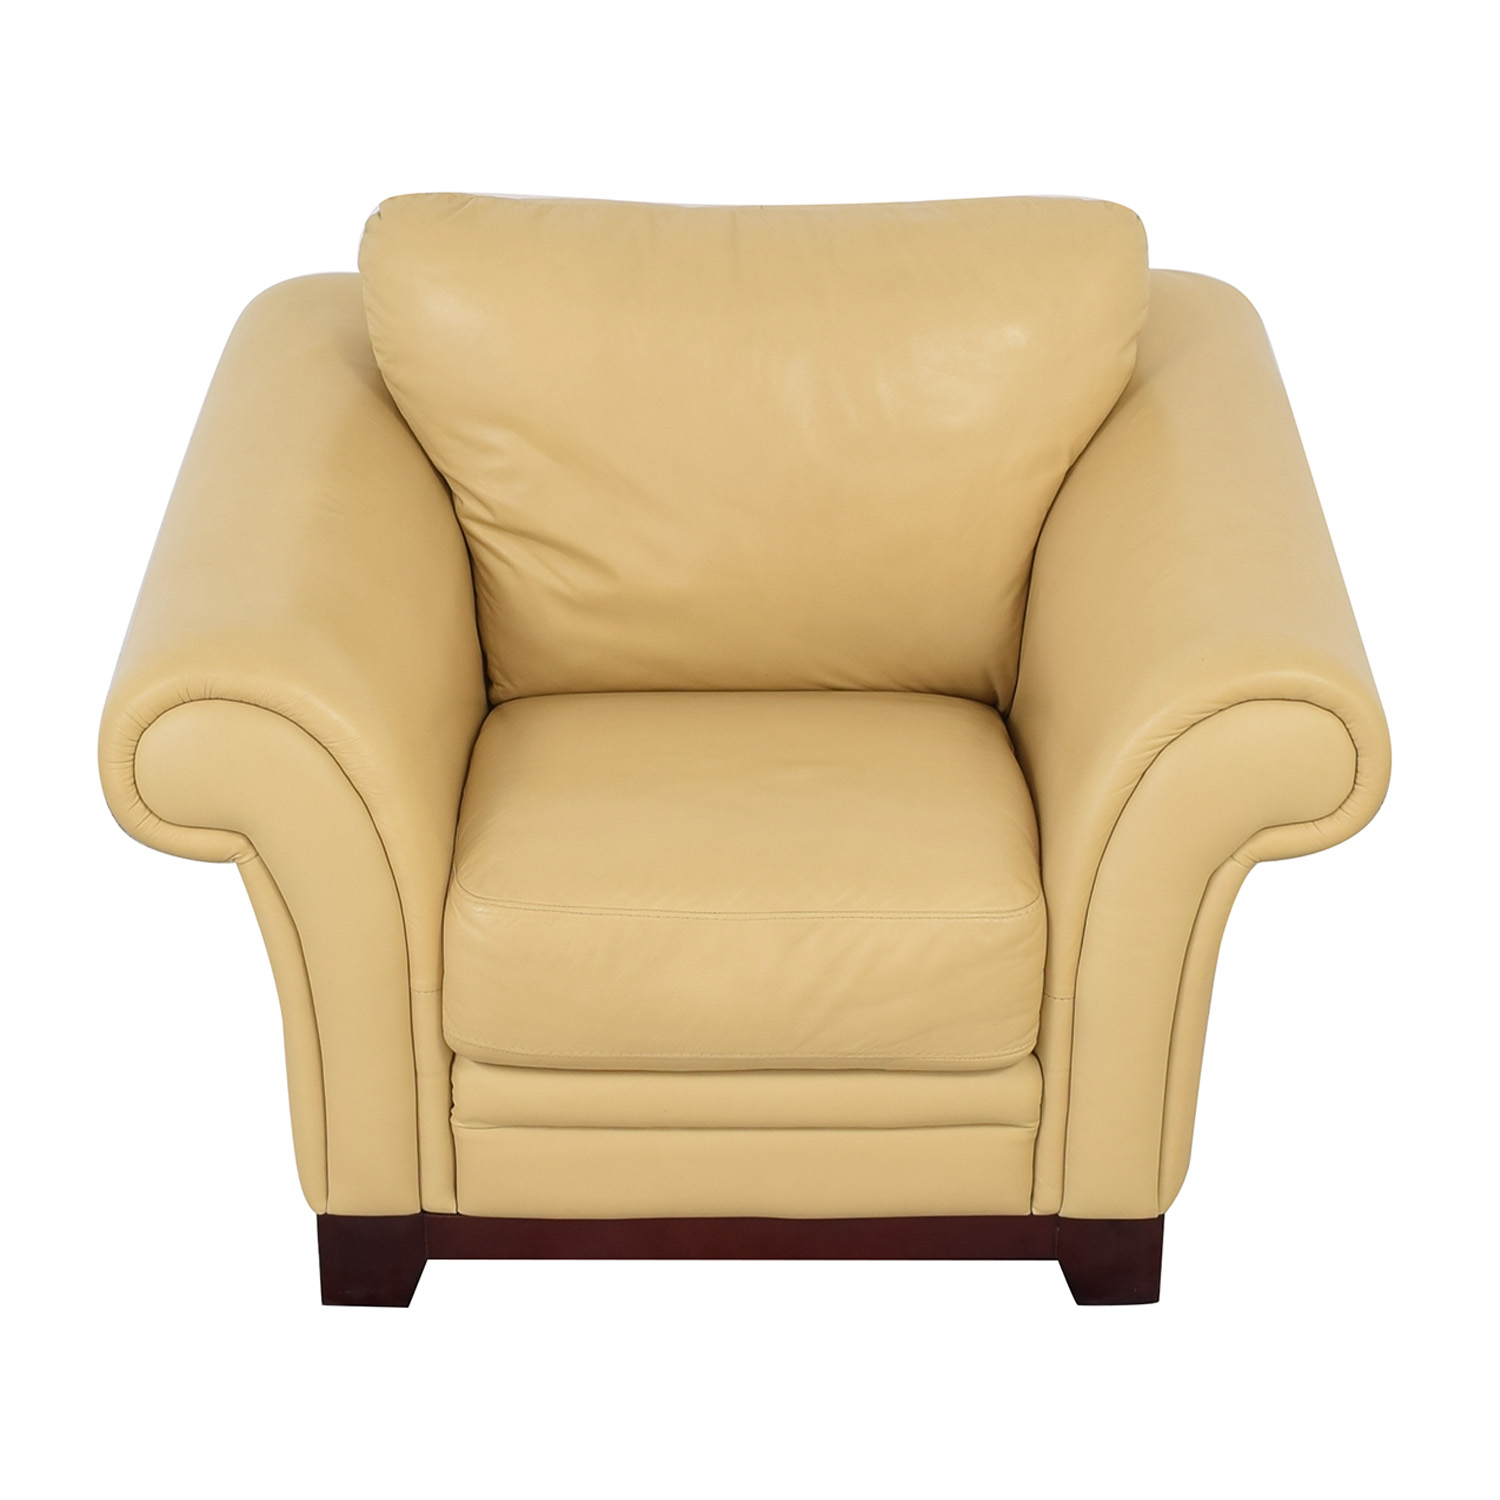 Castro Convertibles Castro Convertibles Yellow Leather Armchair pa